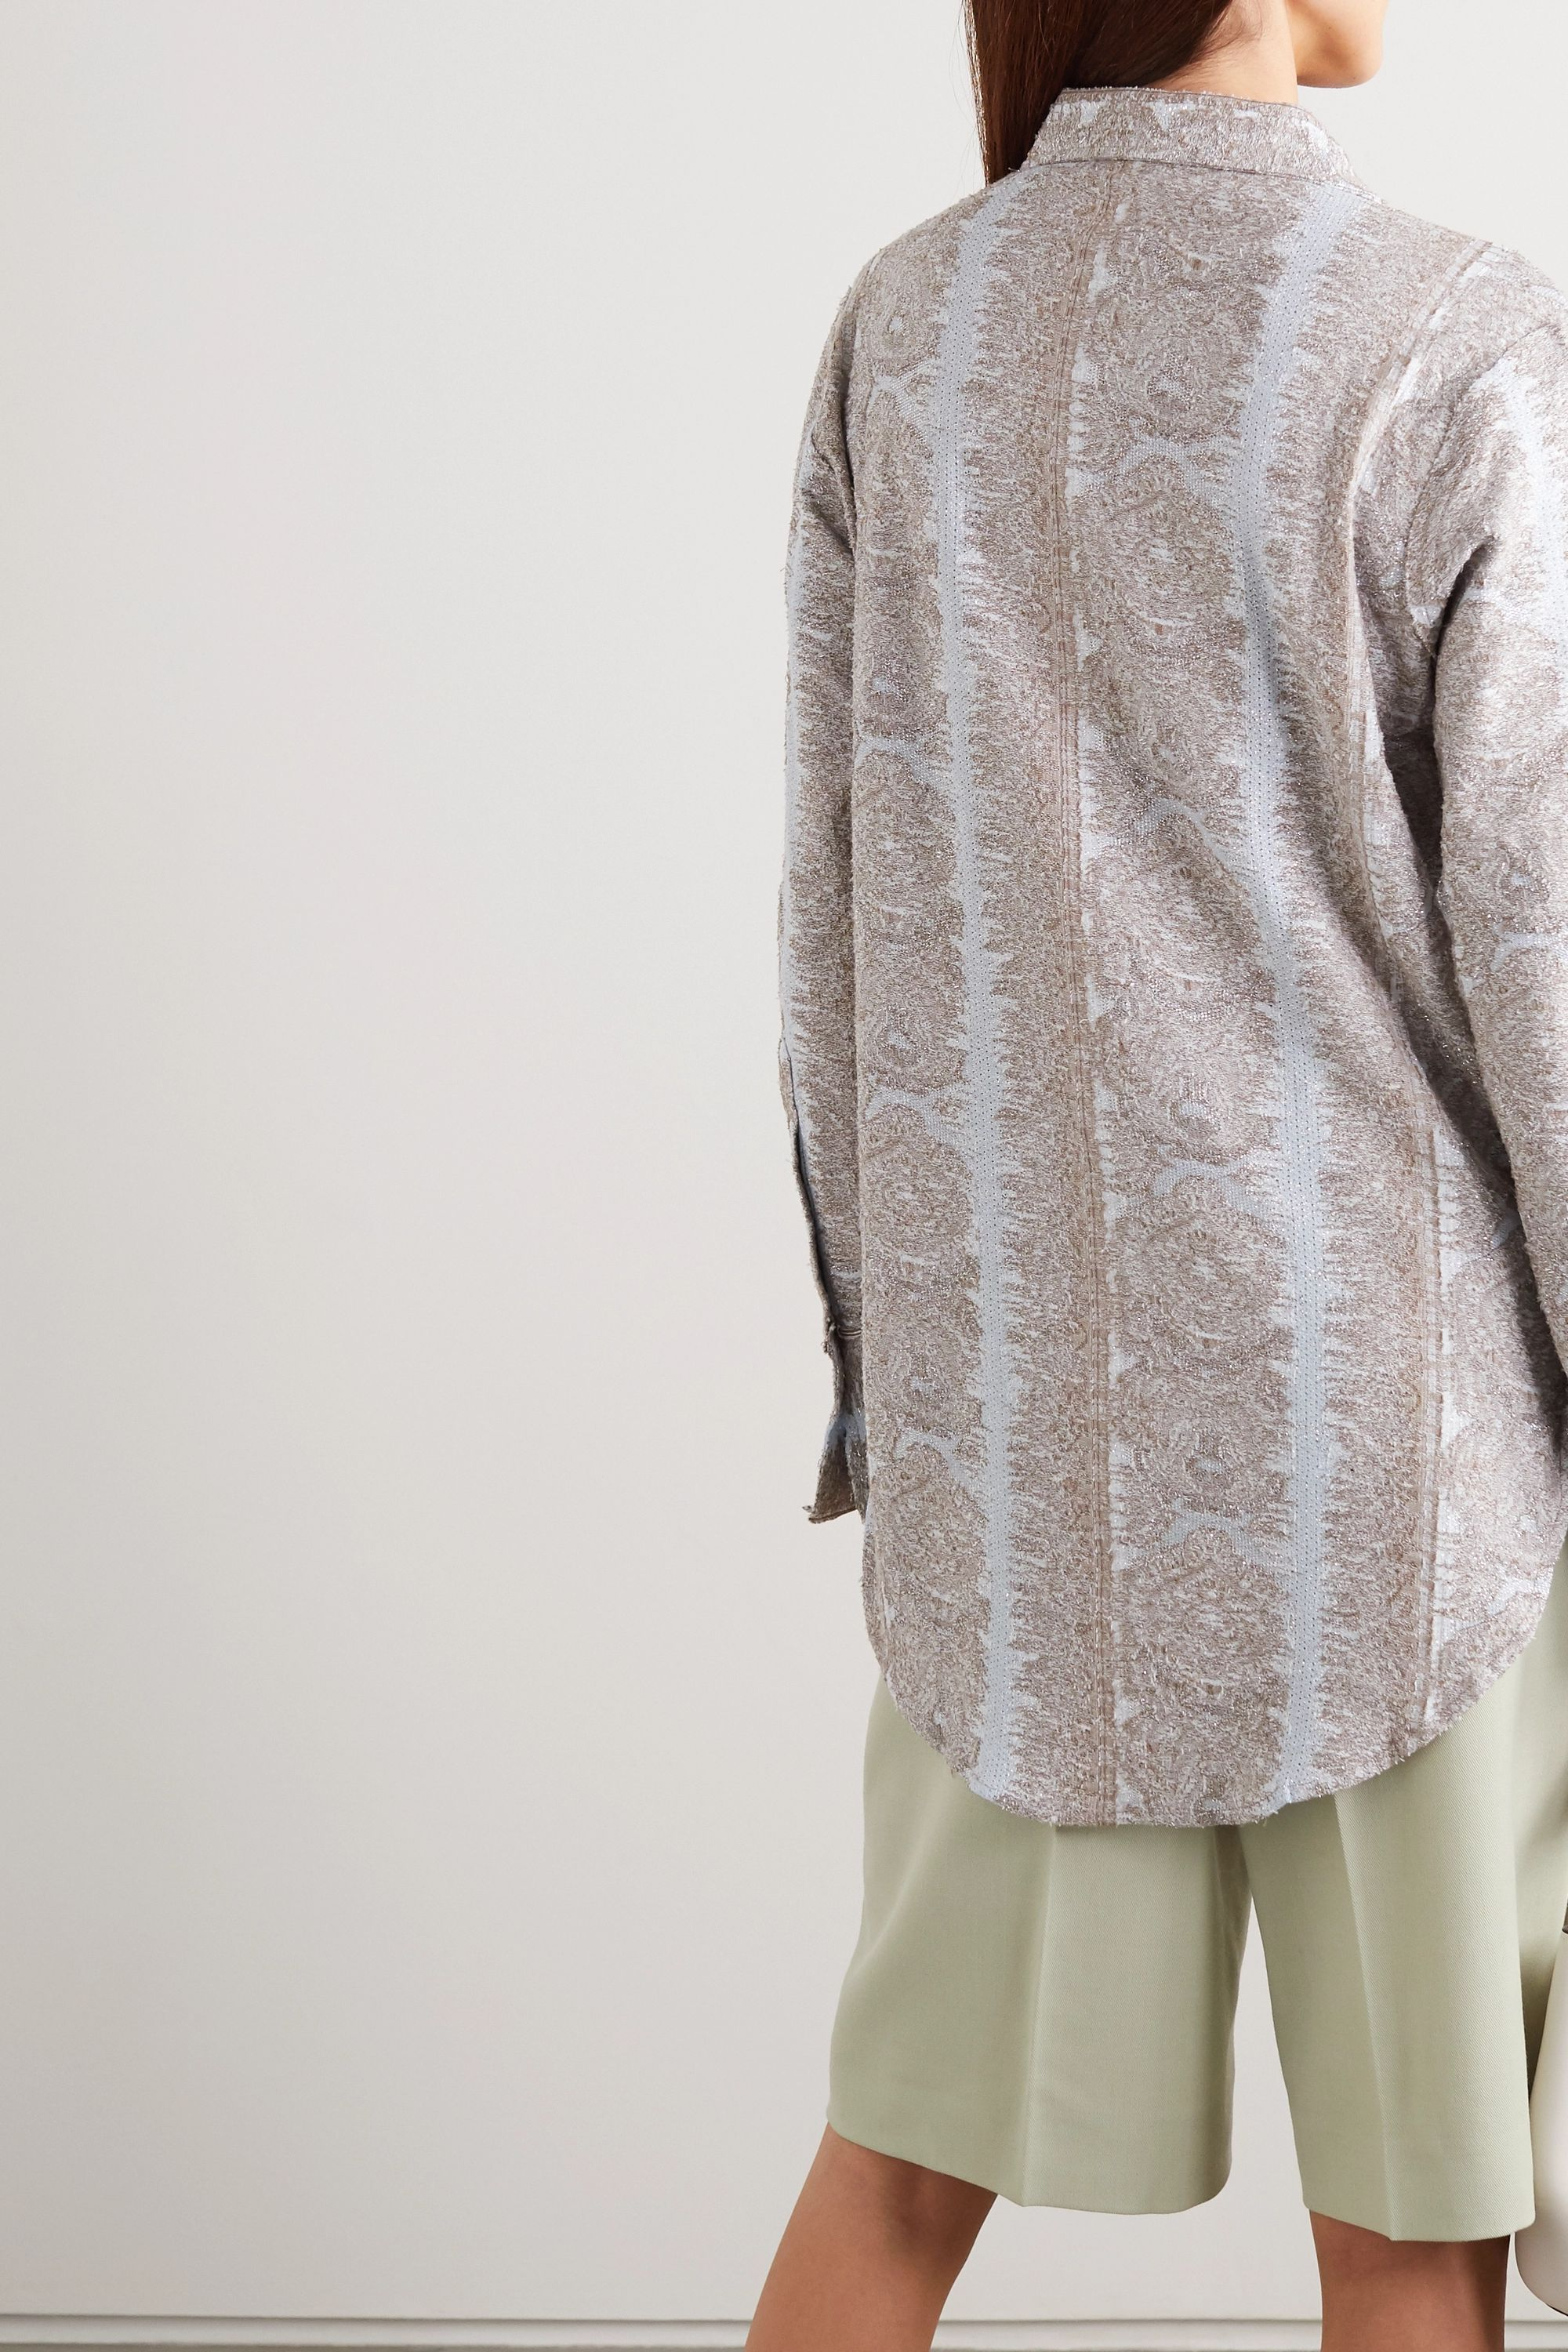 Acne Studios Metallic cotton-blend jacquard shirt